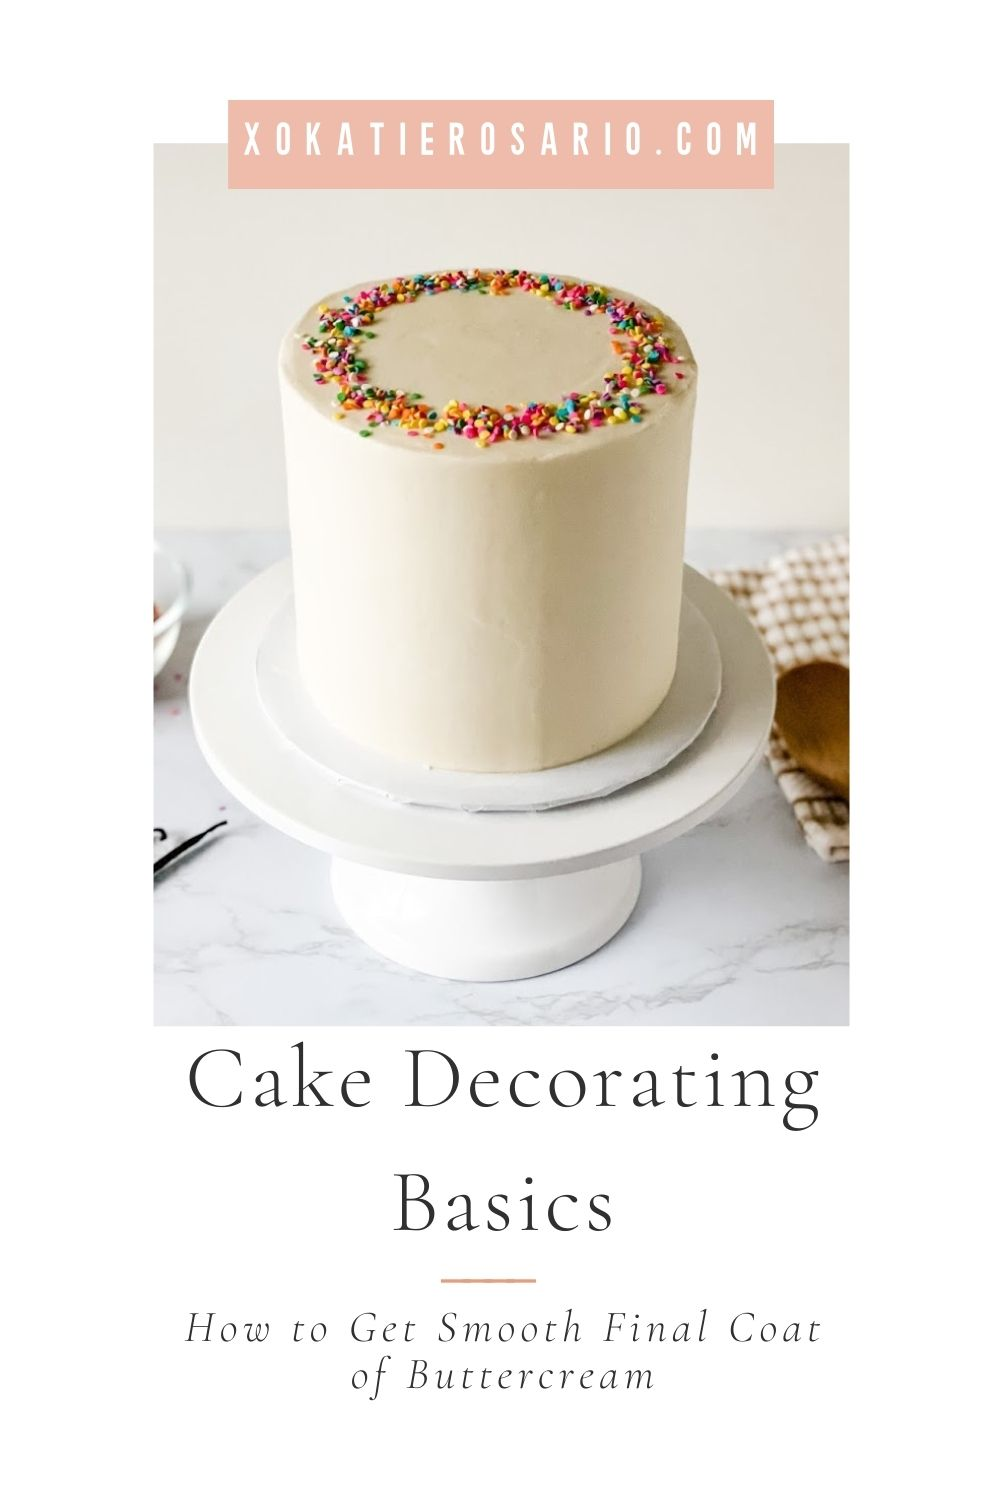 How to Frost a Cake with Buttercream - Step-by-Step Video Tutorial | I'll share the exact steps you'll need to get perfectly smooth sides and sharp edges. I hope that you'll learn from my mistakes and be light years ahead in your decorating journey with this How to Frost Perfectly Smooth Cake tutorial. To see the full tutorial, go to XOKatieRosario.com - see you there! #xokatierosario #katierosariocakes #frostcakes #crumbcoatcakes #cakedecoratingtips